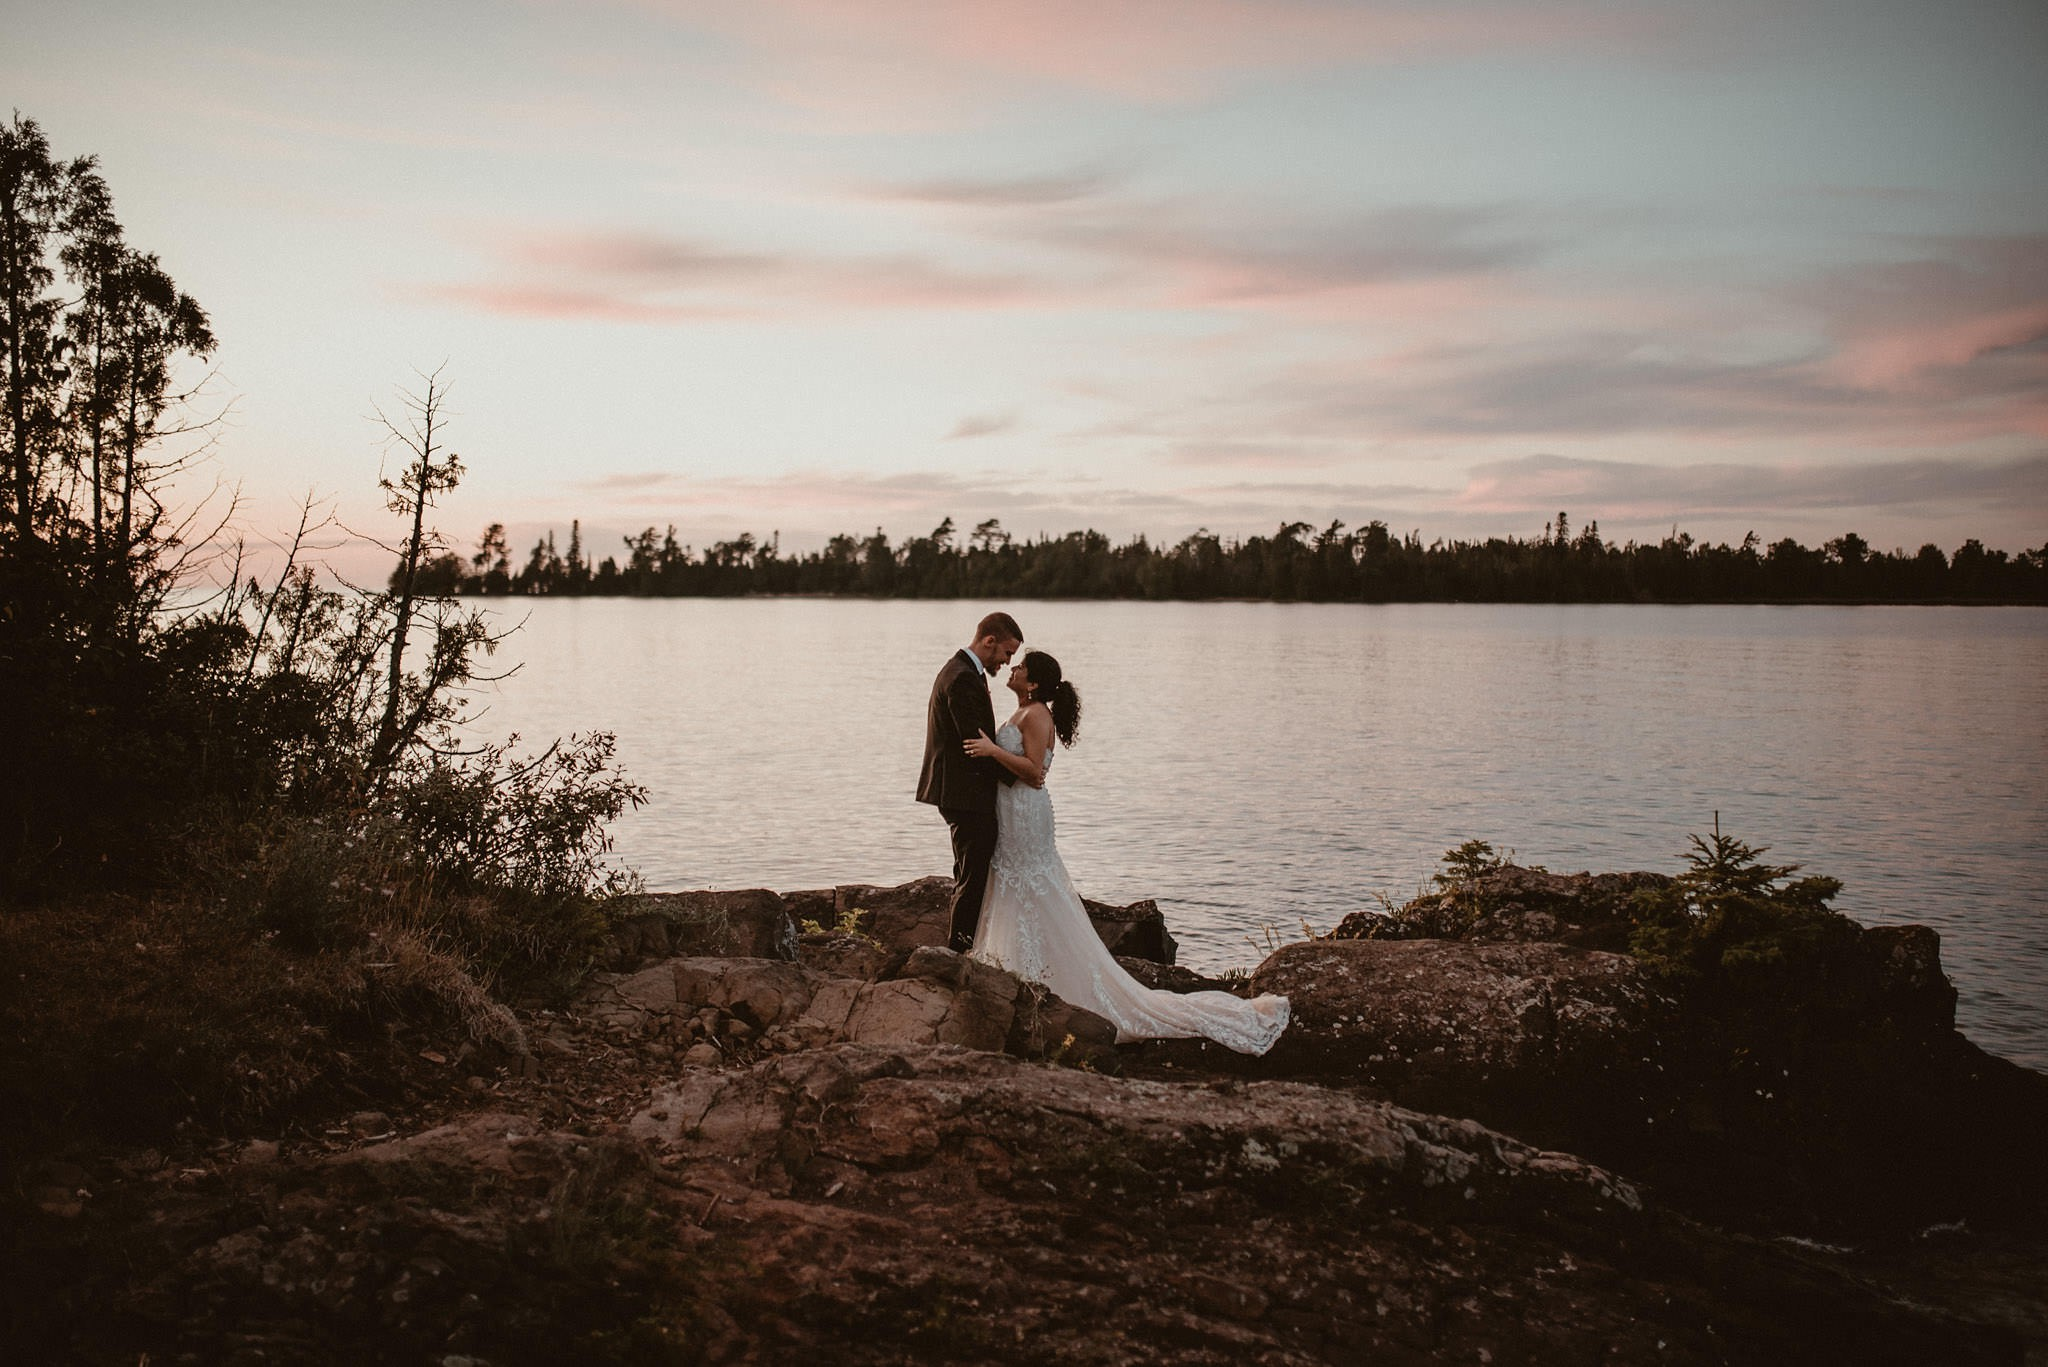 Bride and groom elopement portraits on Lake Superior in Michigan at sunset